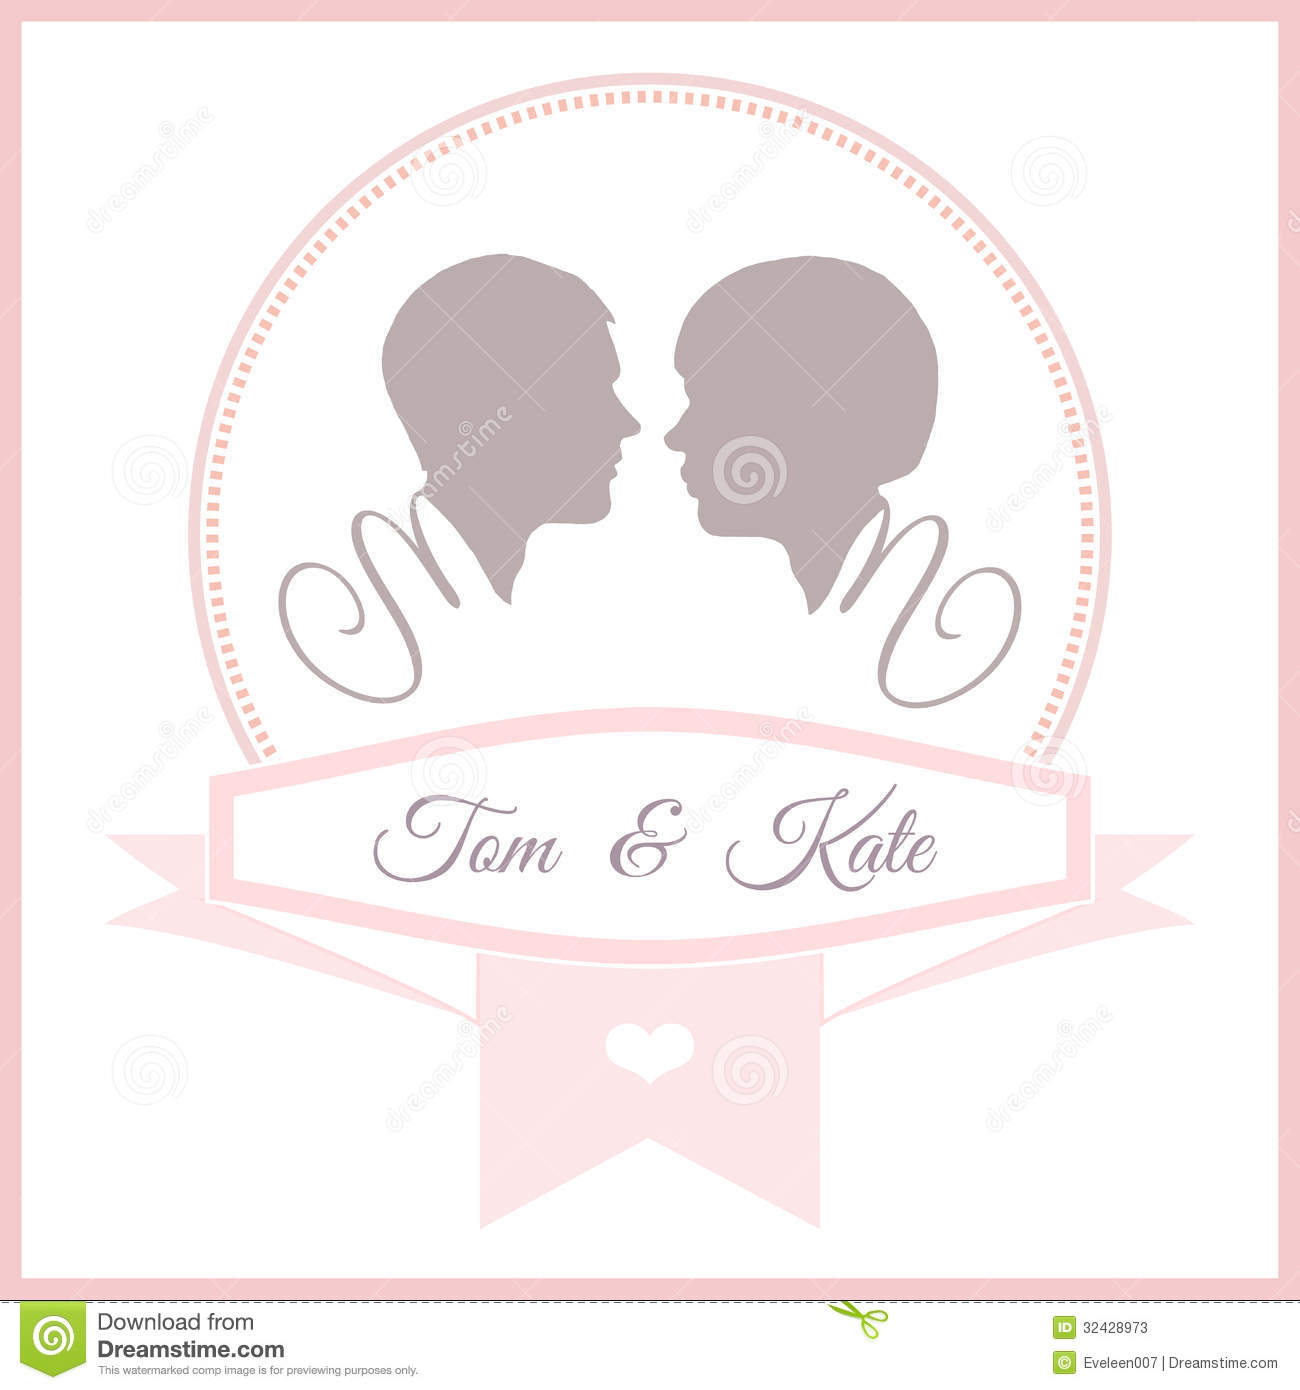 Wedding Invitation Card Template Stock Vector - Illustration of ...